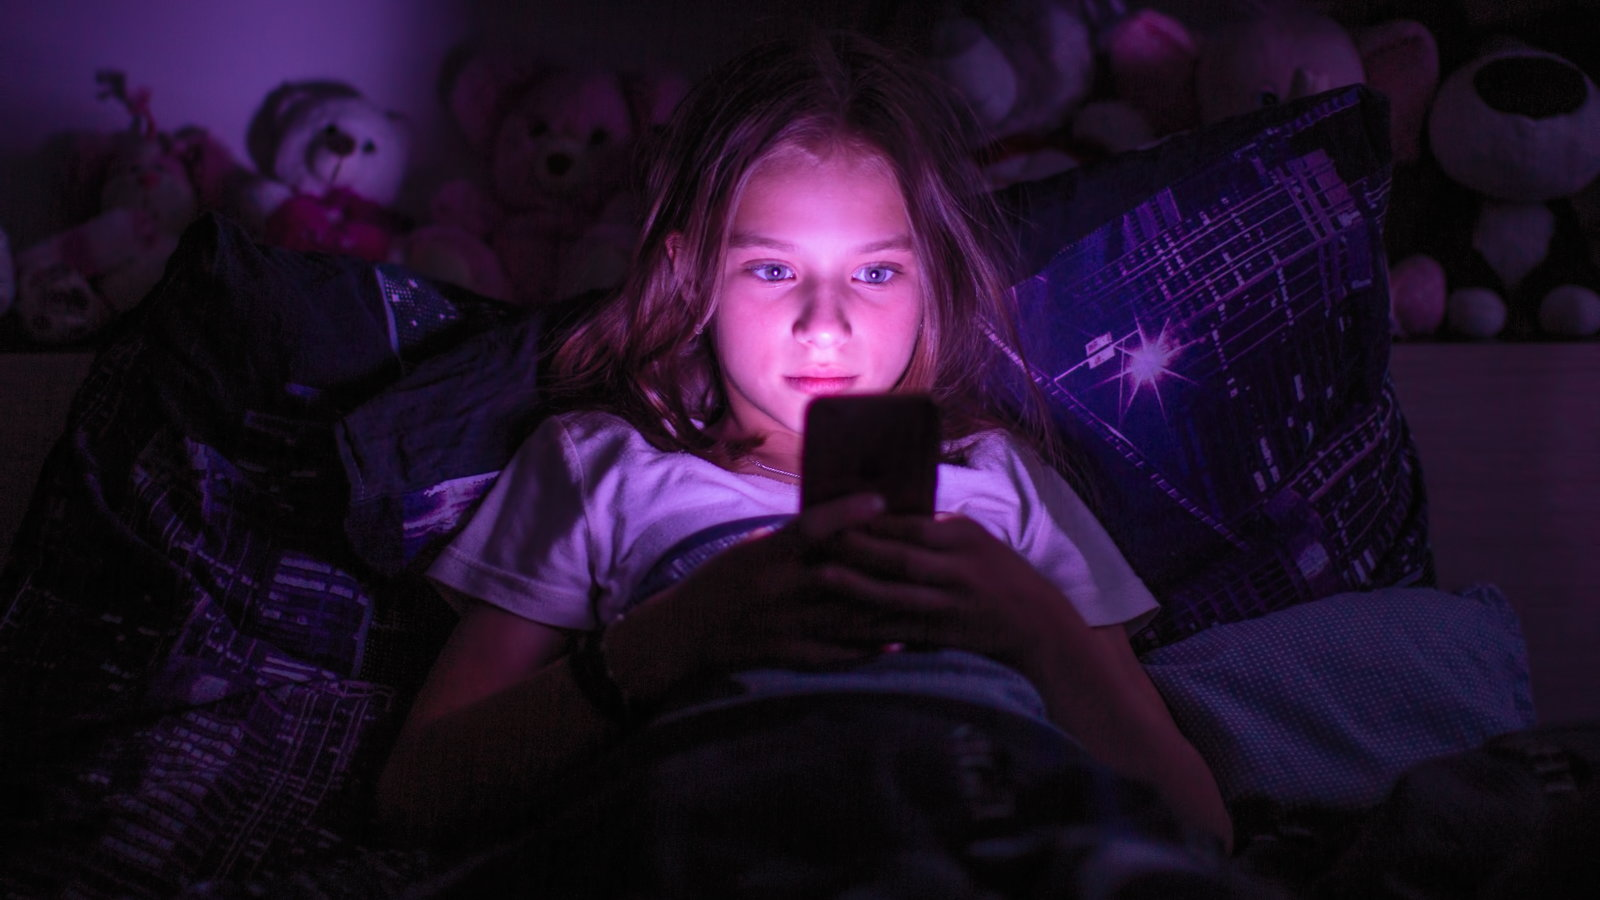 girl using smartphone in bed